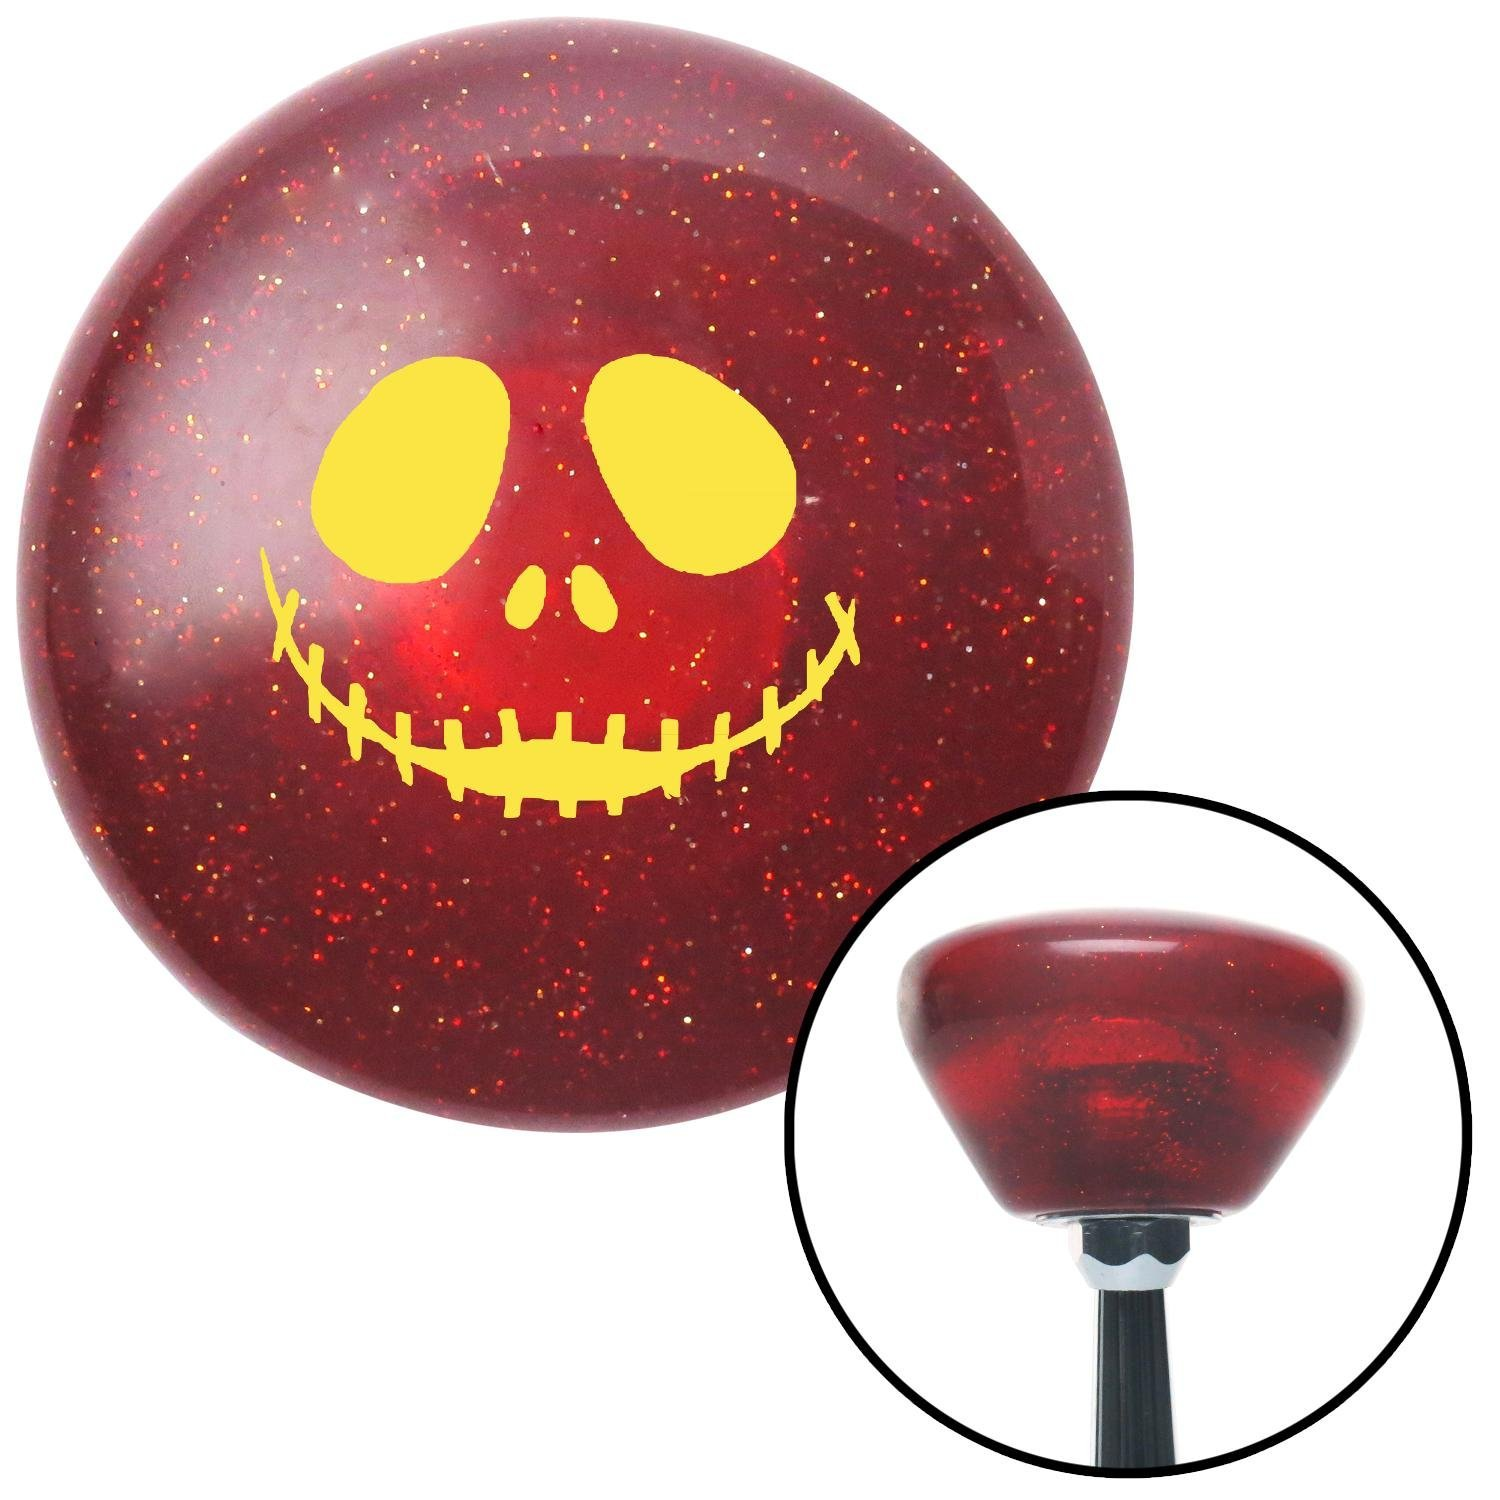 Yellow Jack Zippered Mouth American Shifter 193130 Red Retro Metal Flake Shift Knob with M16 x 1.5 Insert